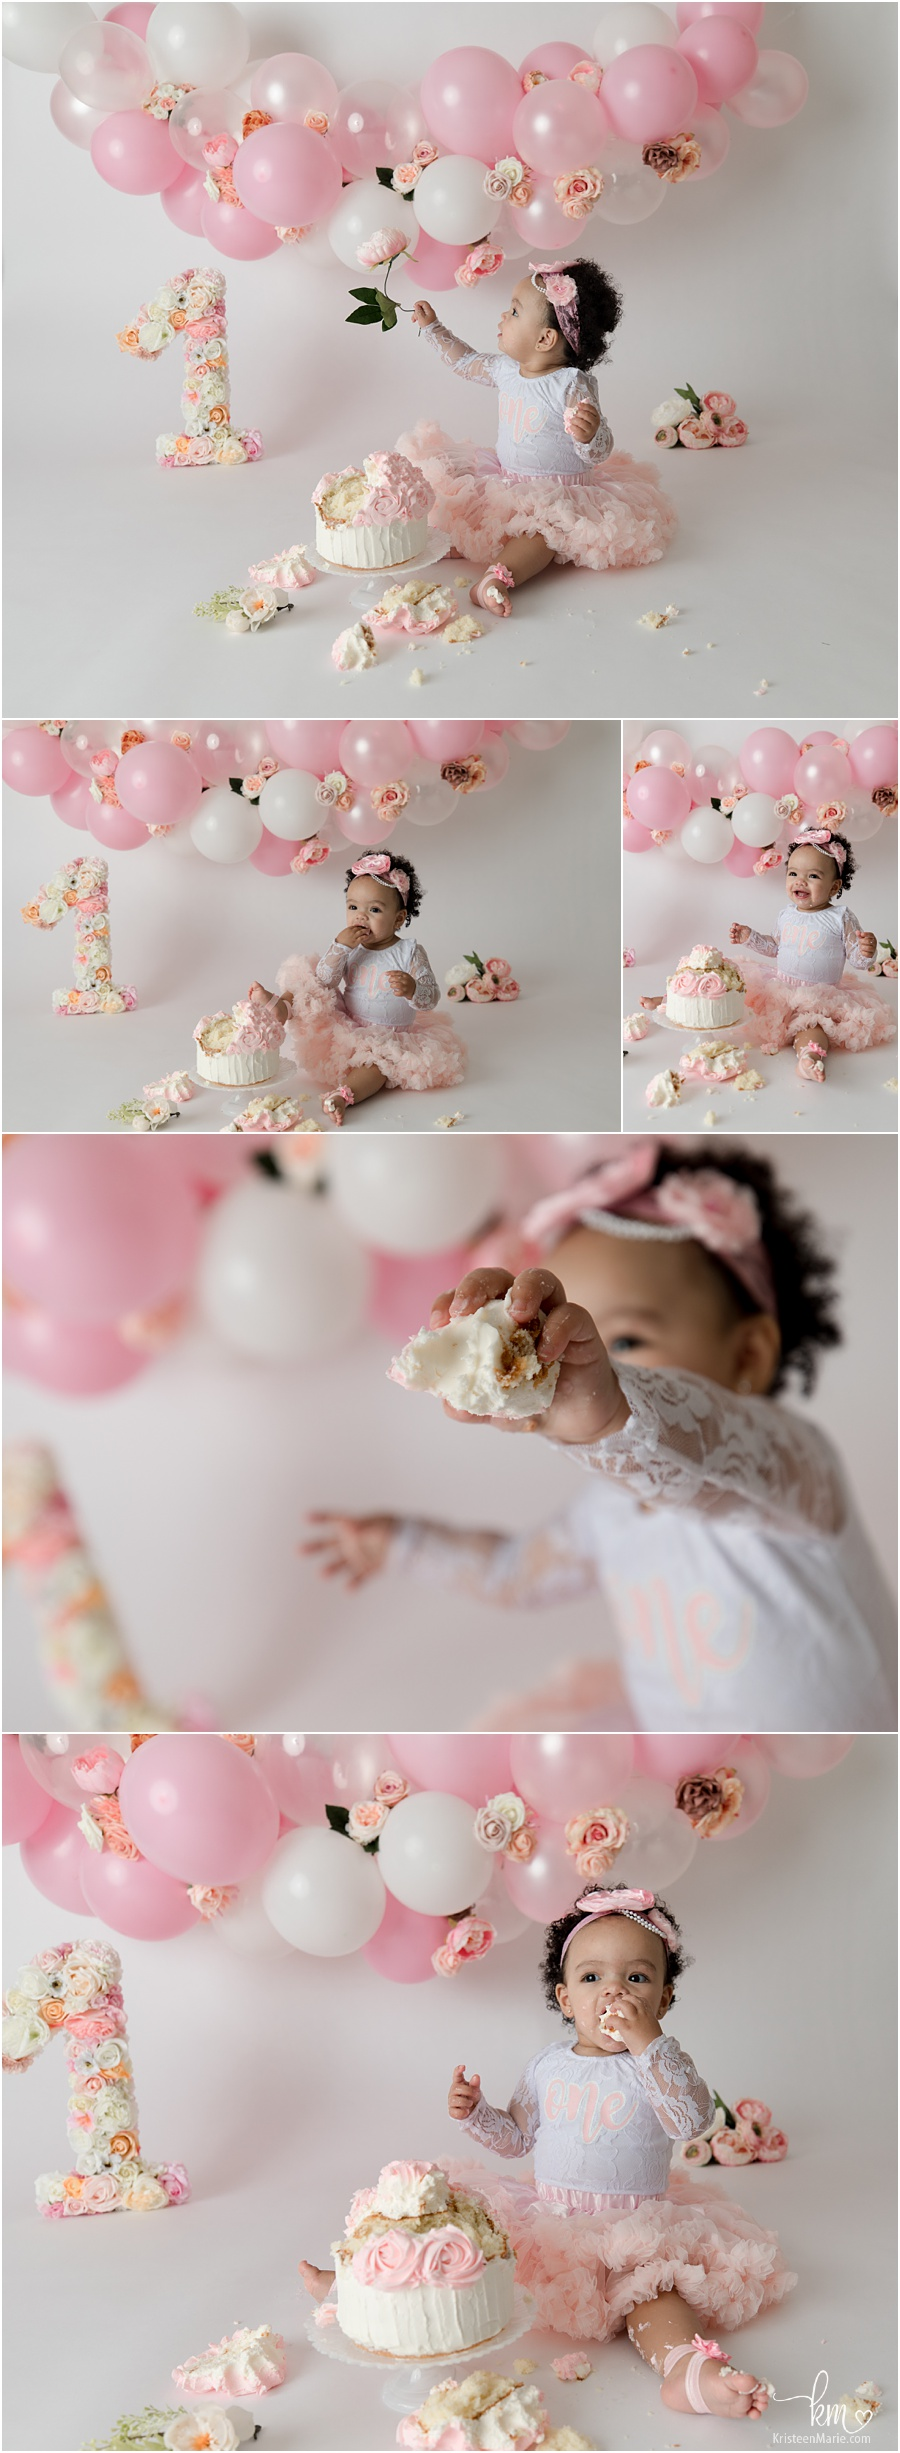 Cake Smash session with pink balloon arch including flowers